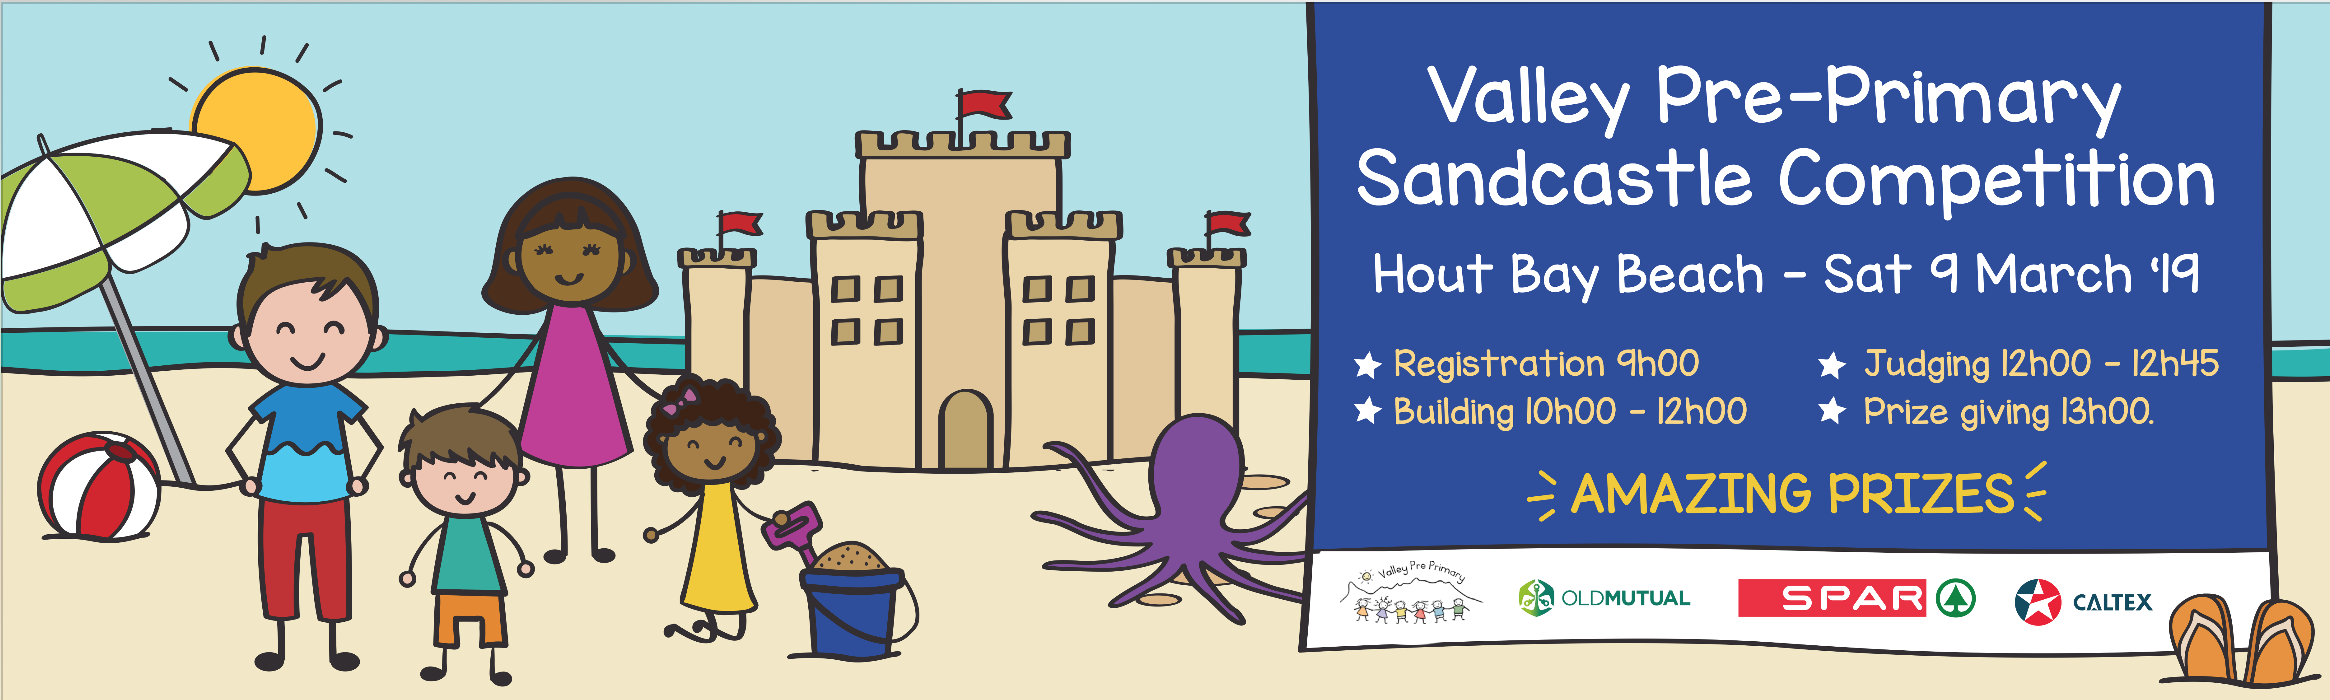 Sandcastle Competition 9 March 2019